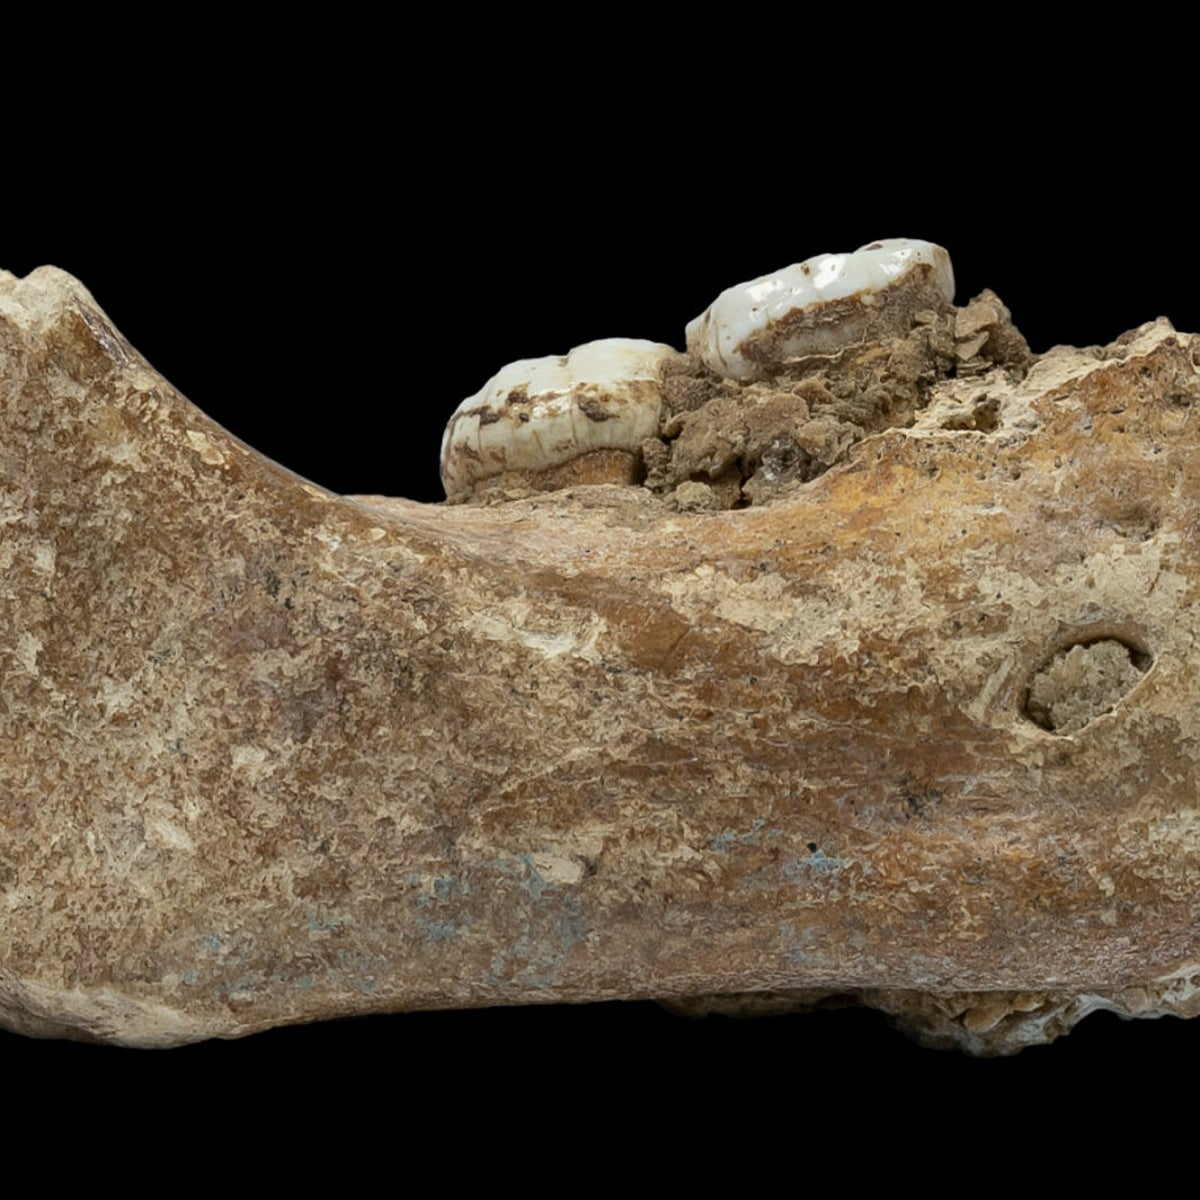 The Xiahe mandible now identified as a Denisovan, of which only the right half was found in Baishiya Karst Cave.